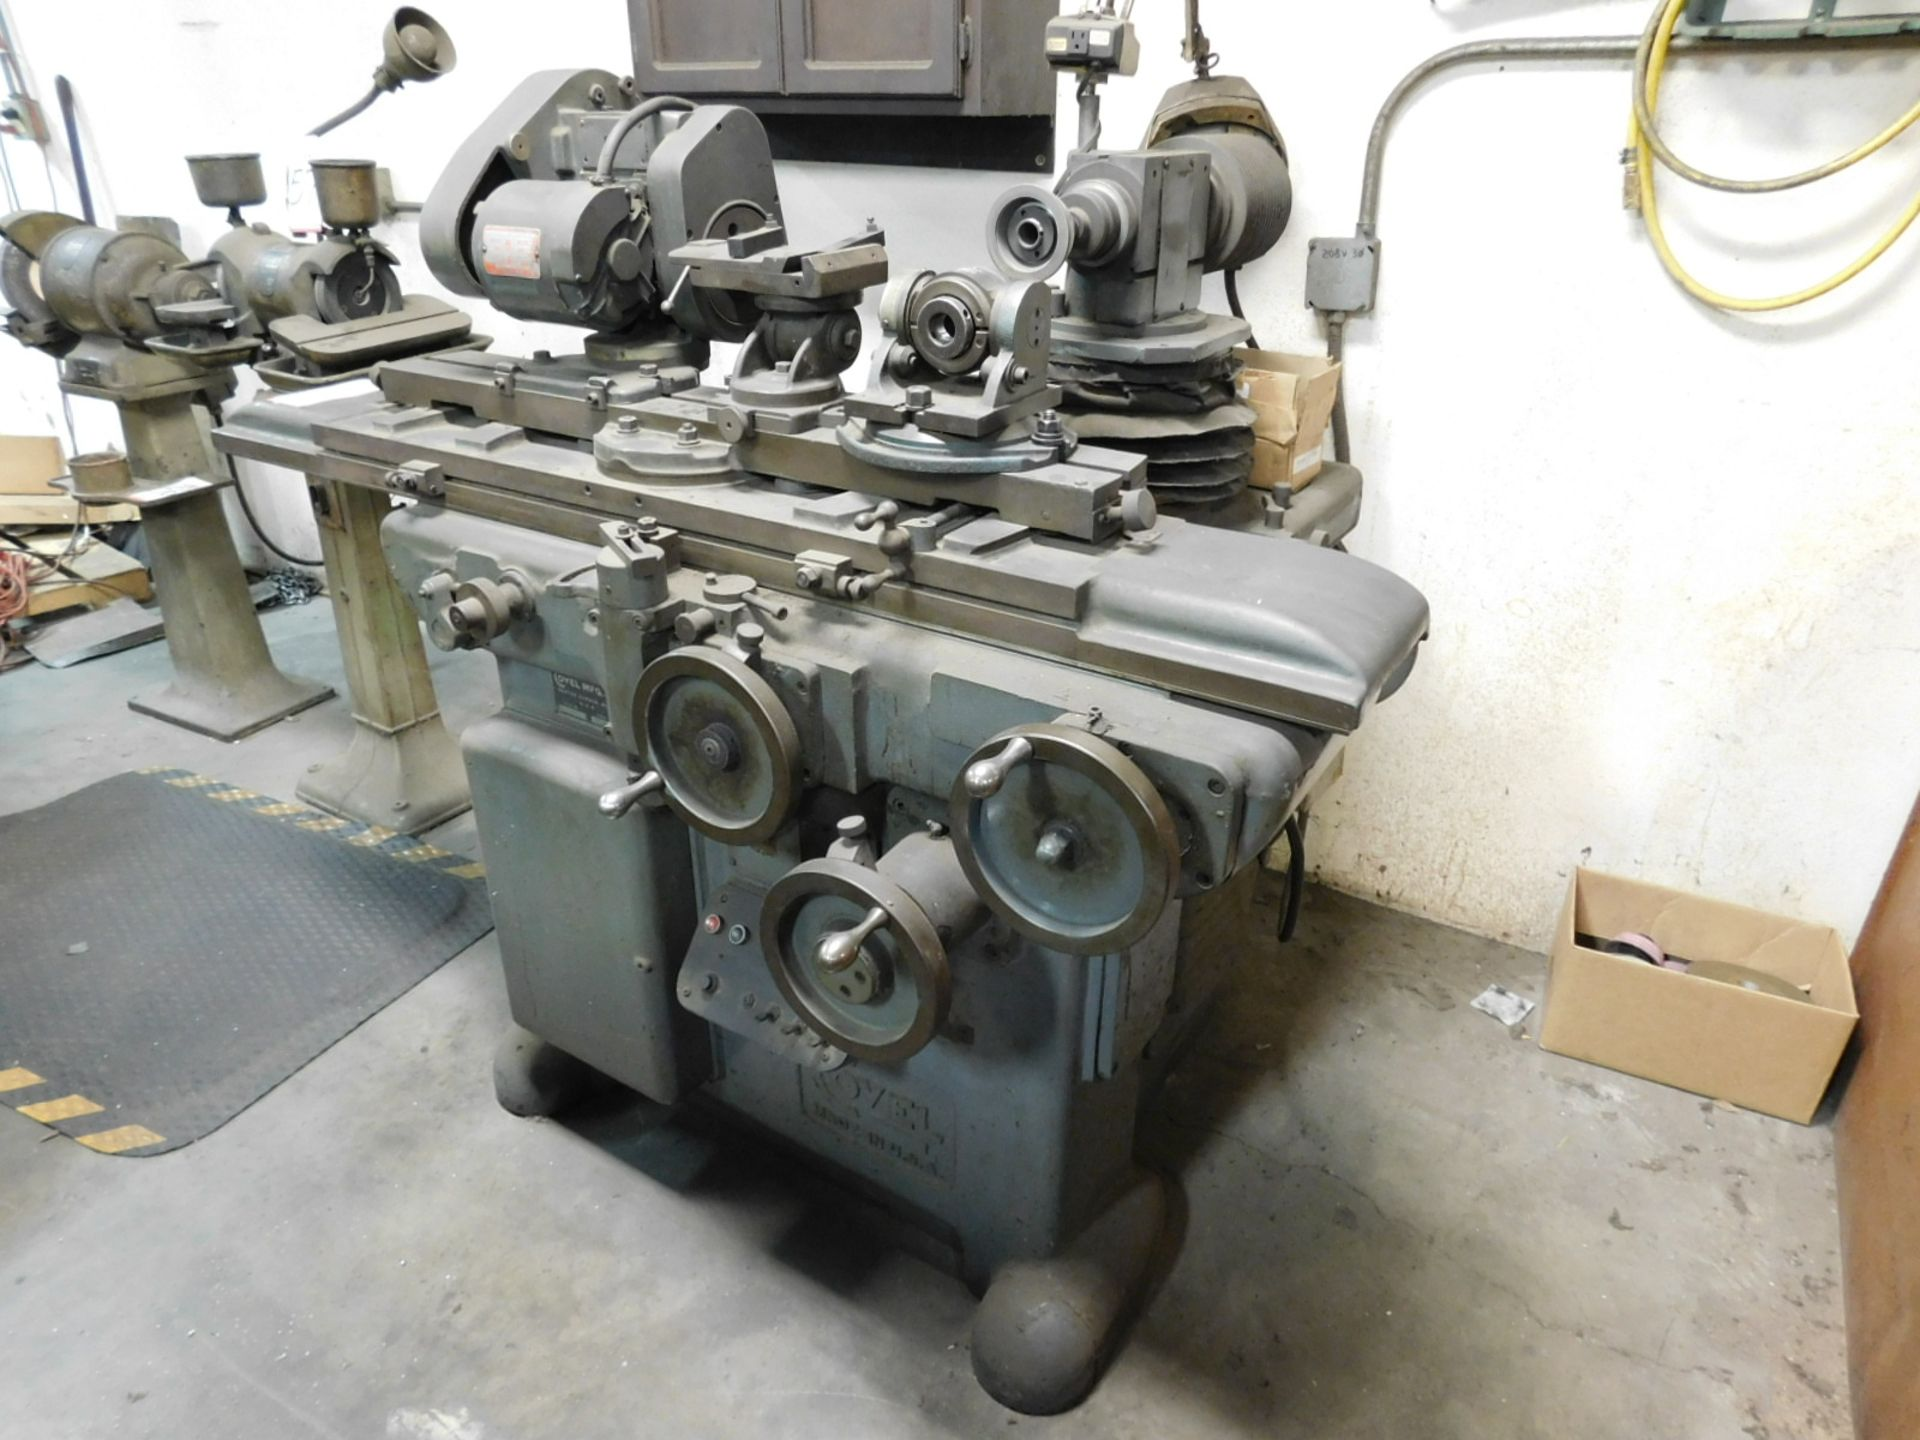 Lot 58 - COVEL MFG. CO. NO. 22 UNIVERSAL CUTTER AND TOOL GRINDER, S/N 22-289